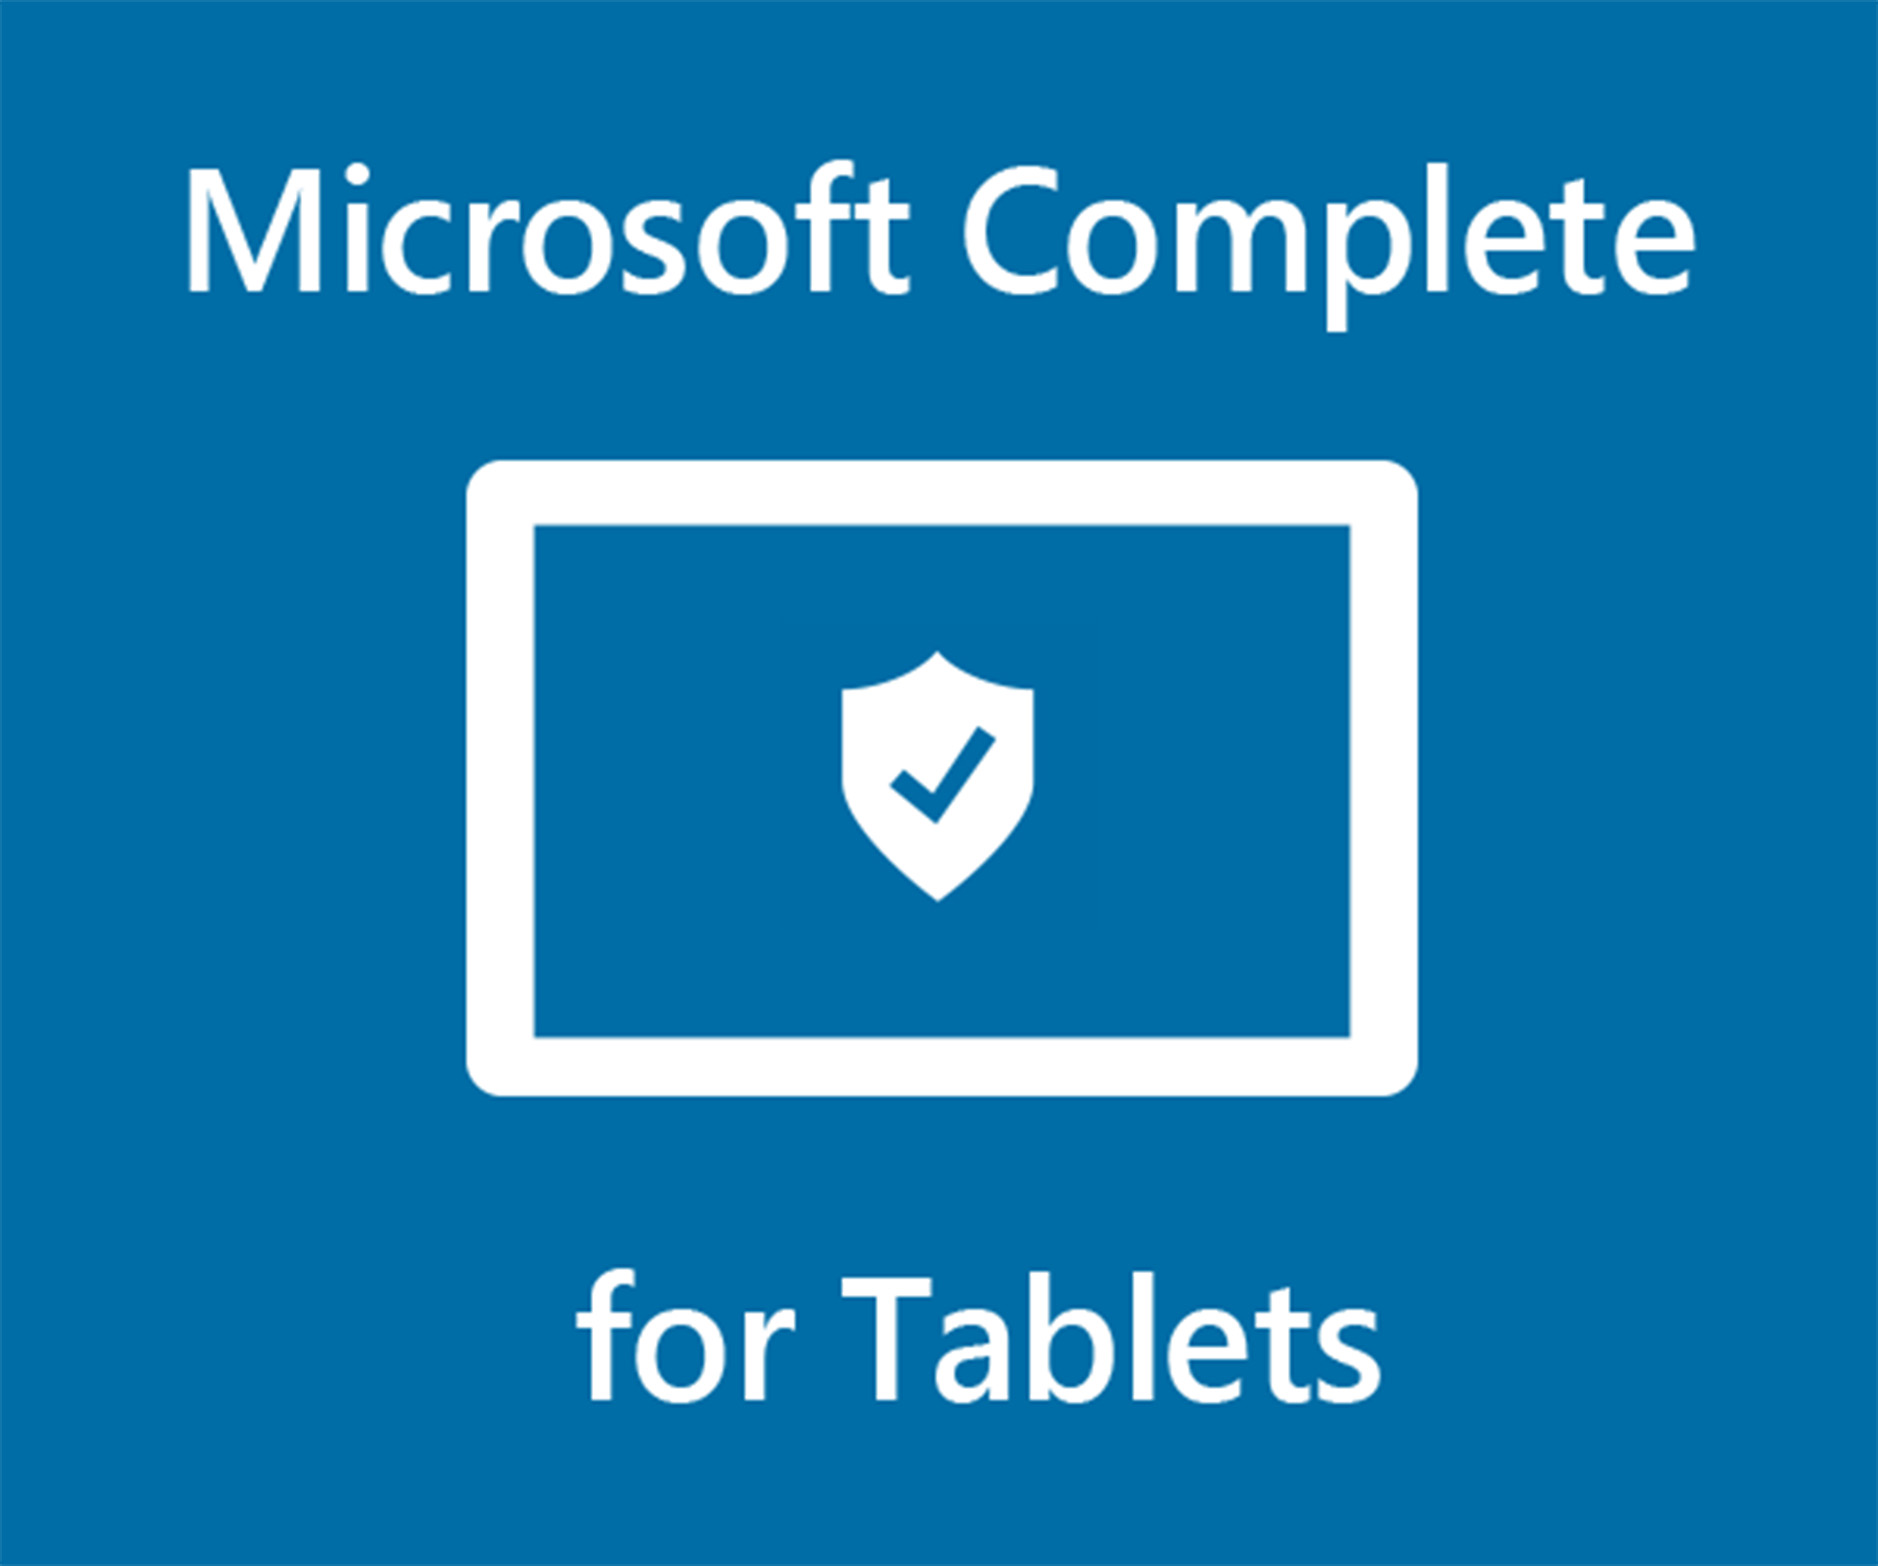 Microsoft Complete for Tablets